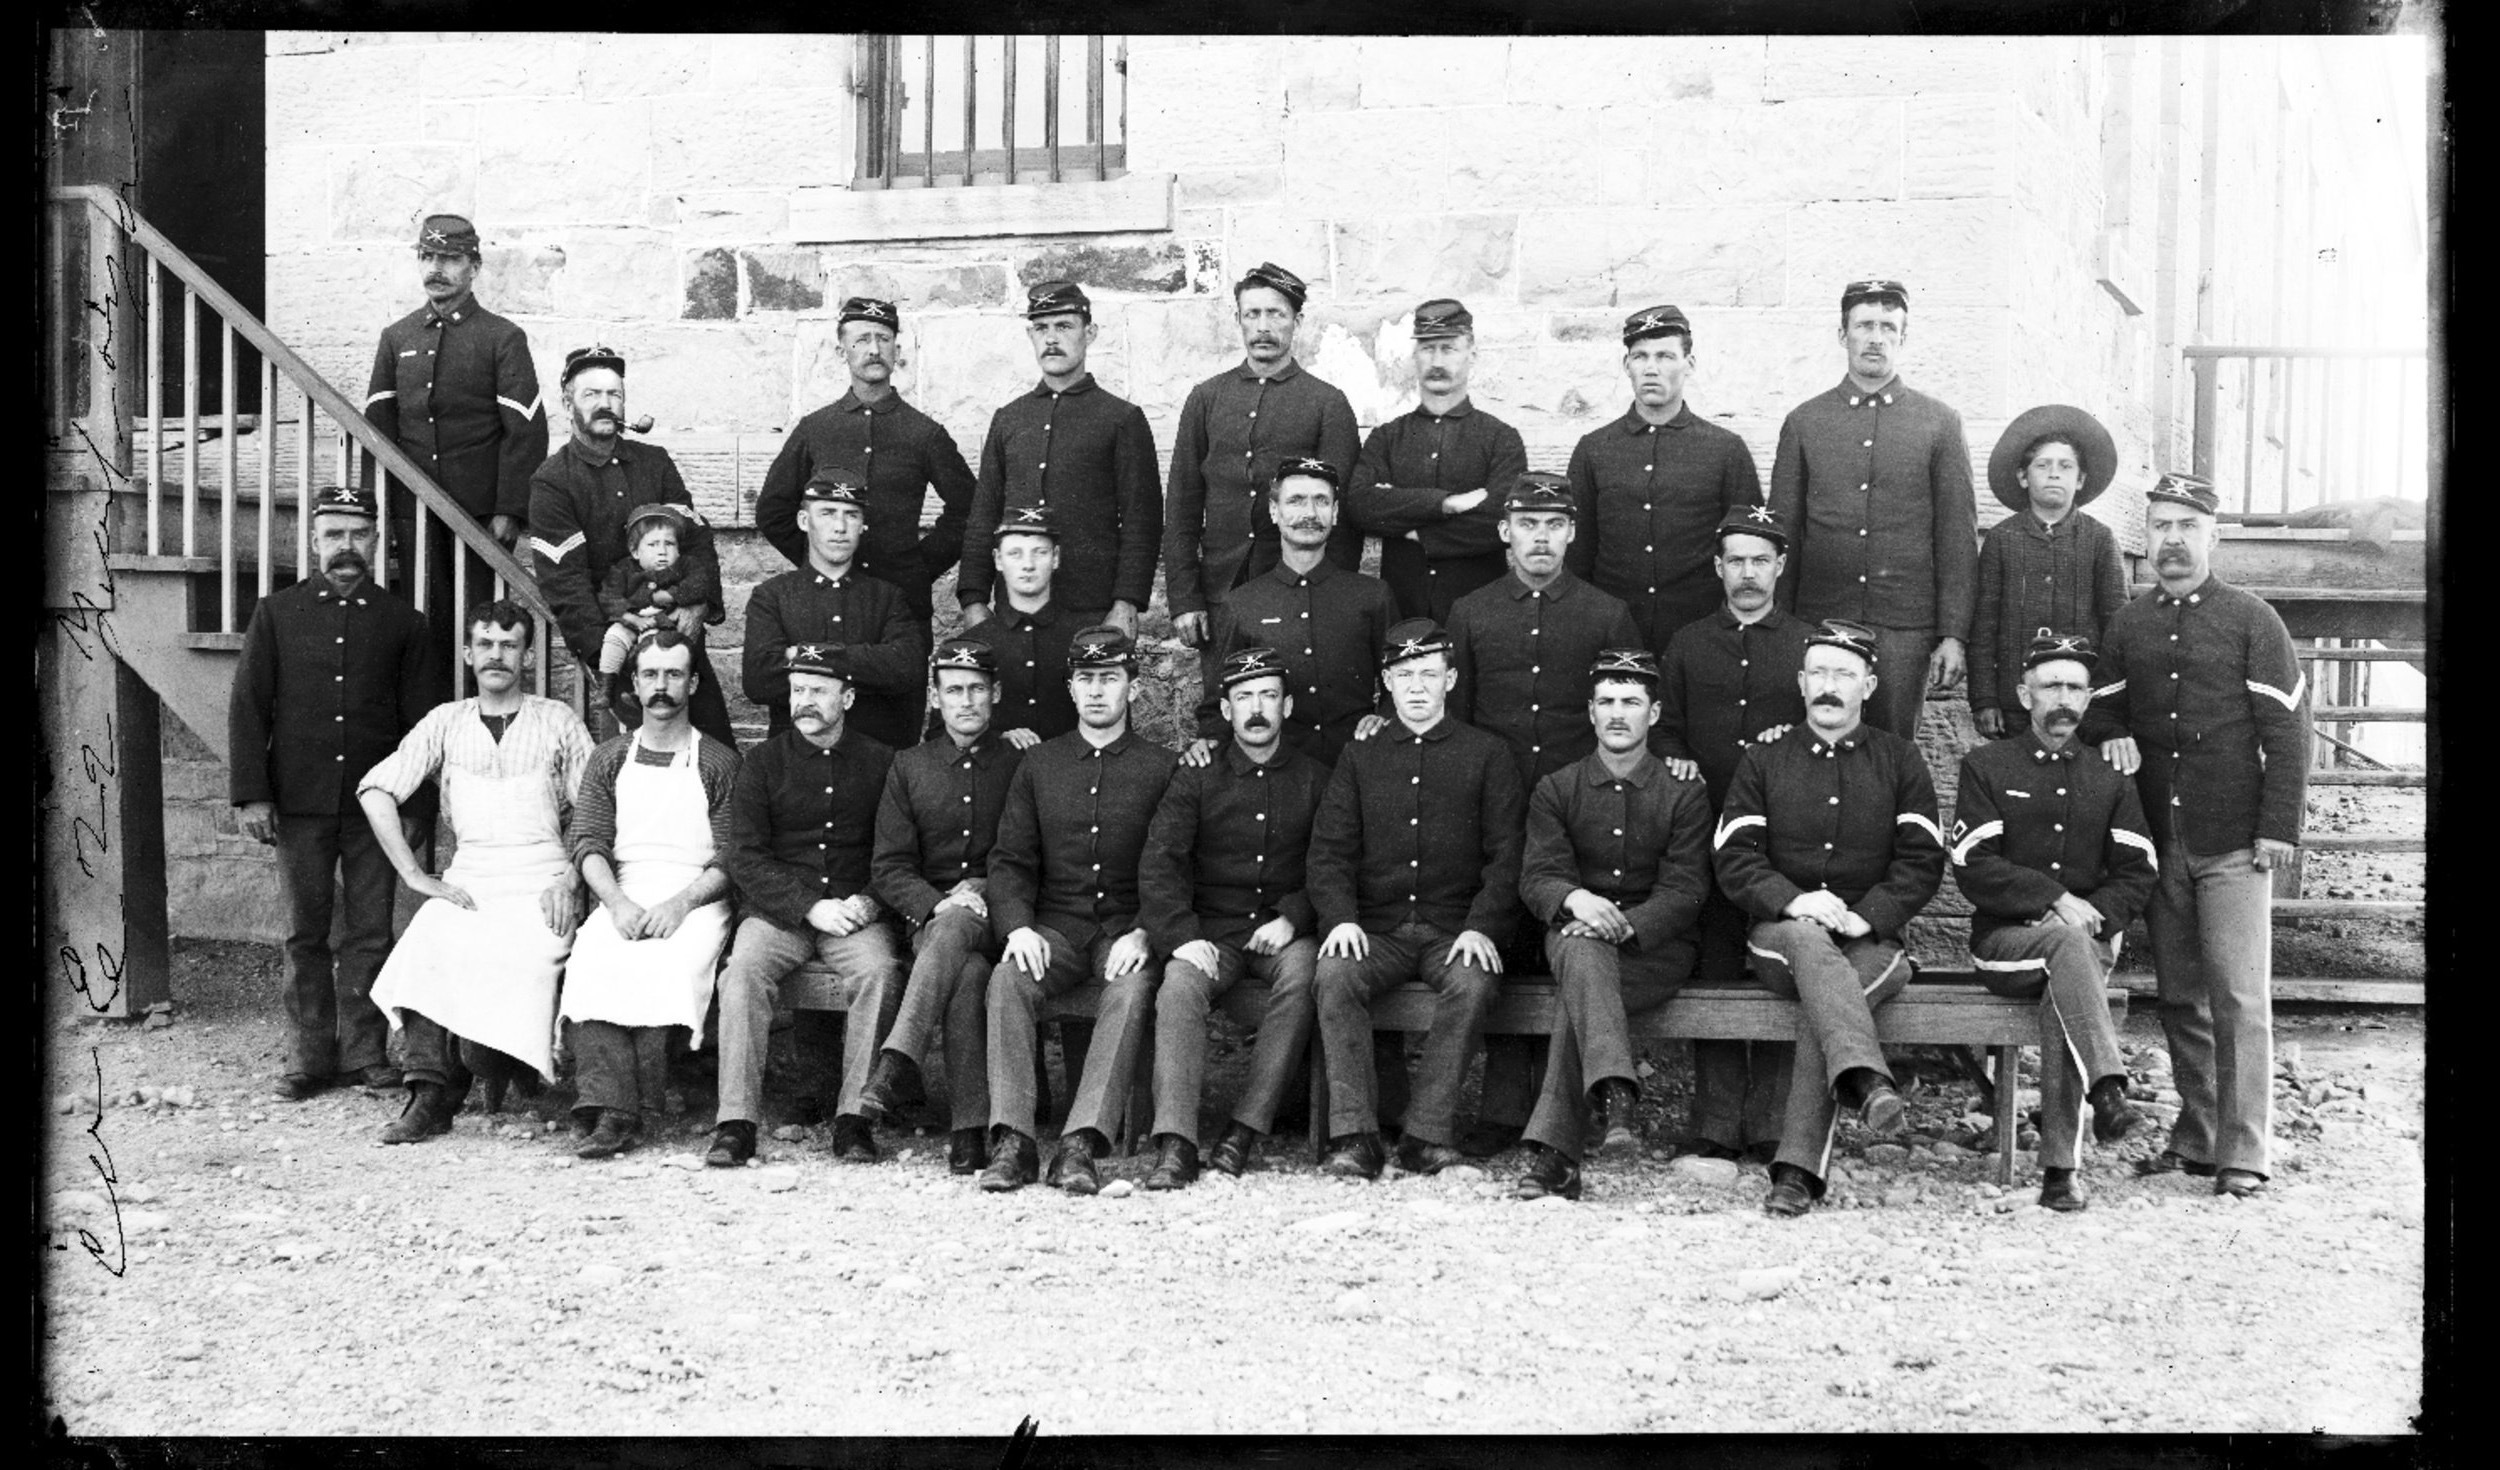 Fort Lyon and Fort Union - Company E, 10th Infantry, at Fort Lyon, Colorado. Soldiers are pictured seated in front of a building. Neg #4